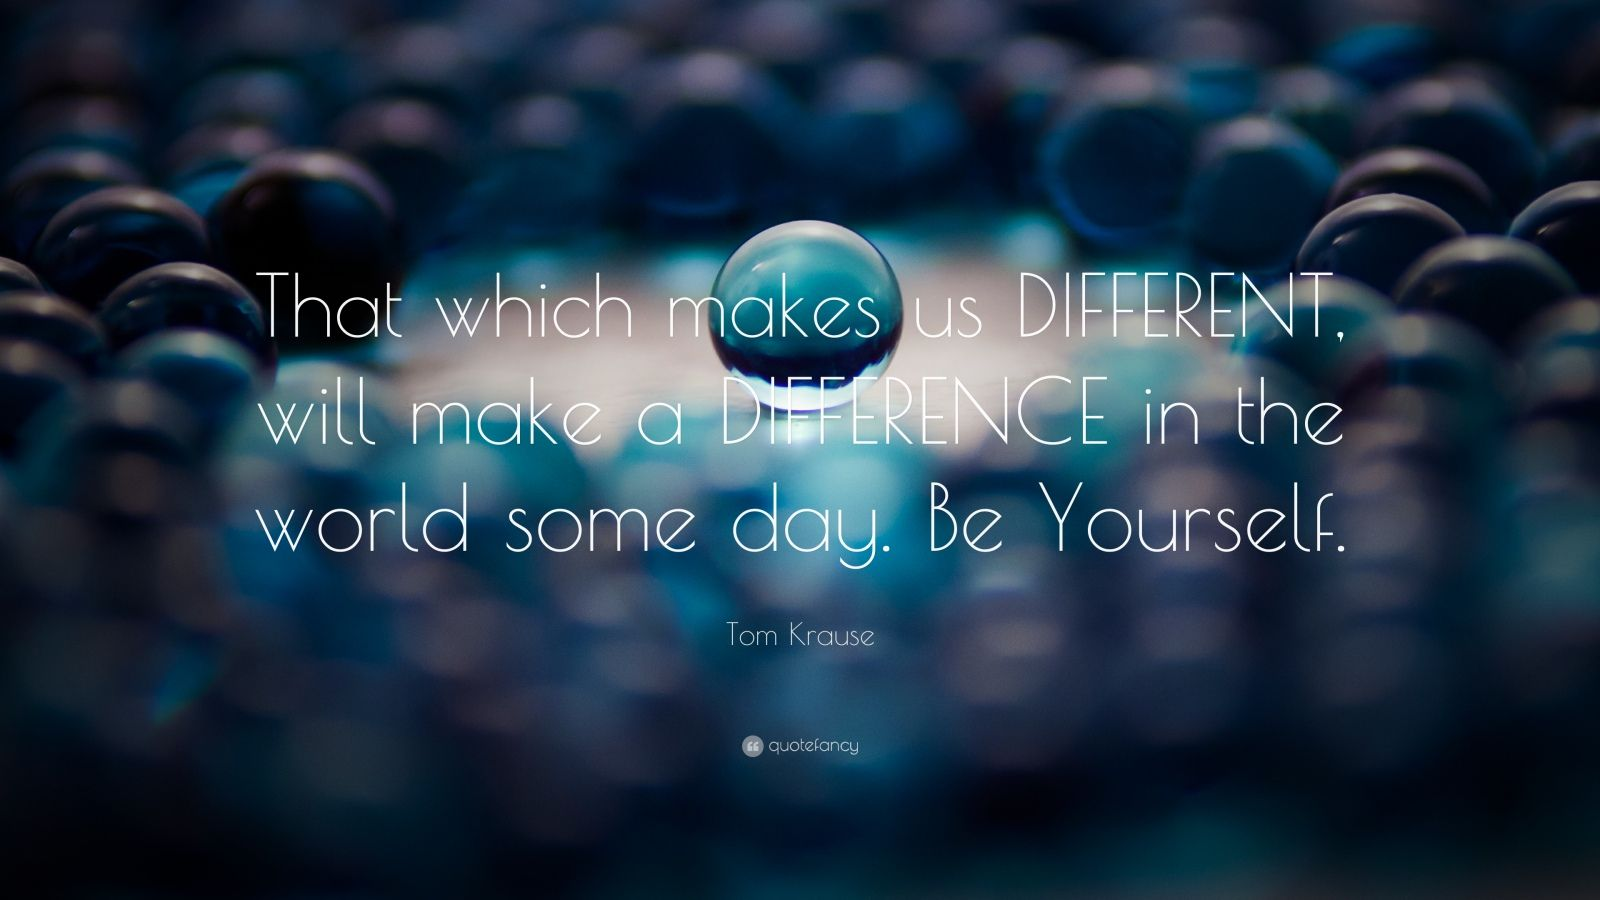 """Tom Krause Quote: """"That which makes us DIFFERENT, will make a DIFFERENCE in the world some day. Be Yourself."""""""